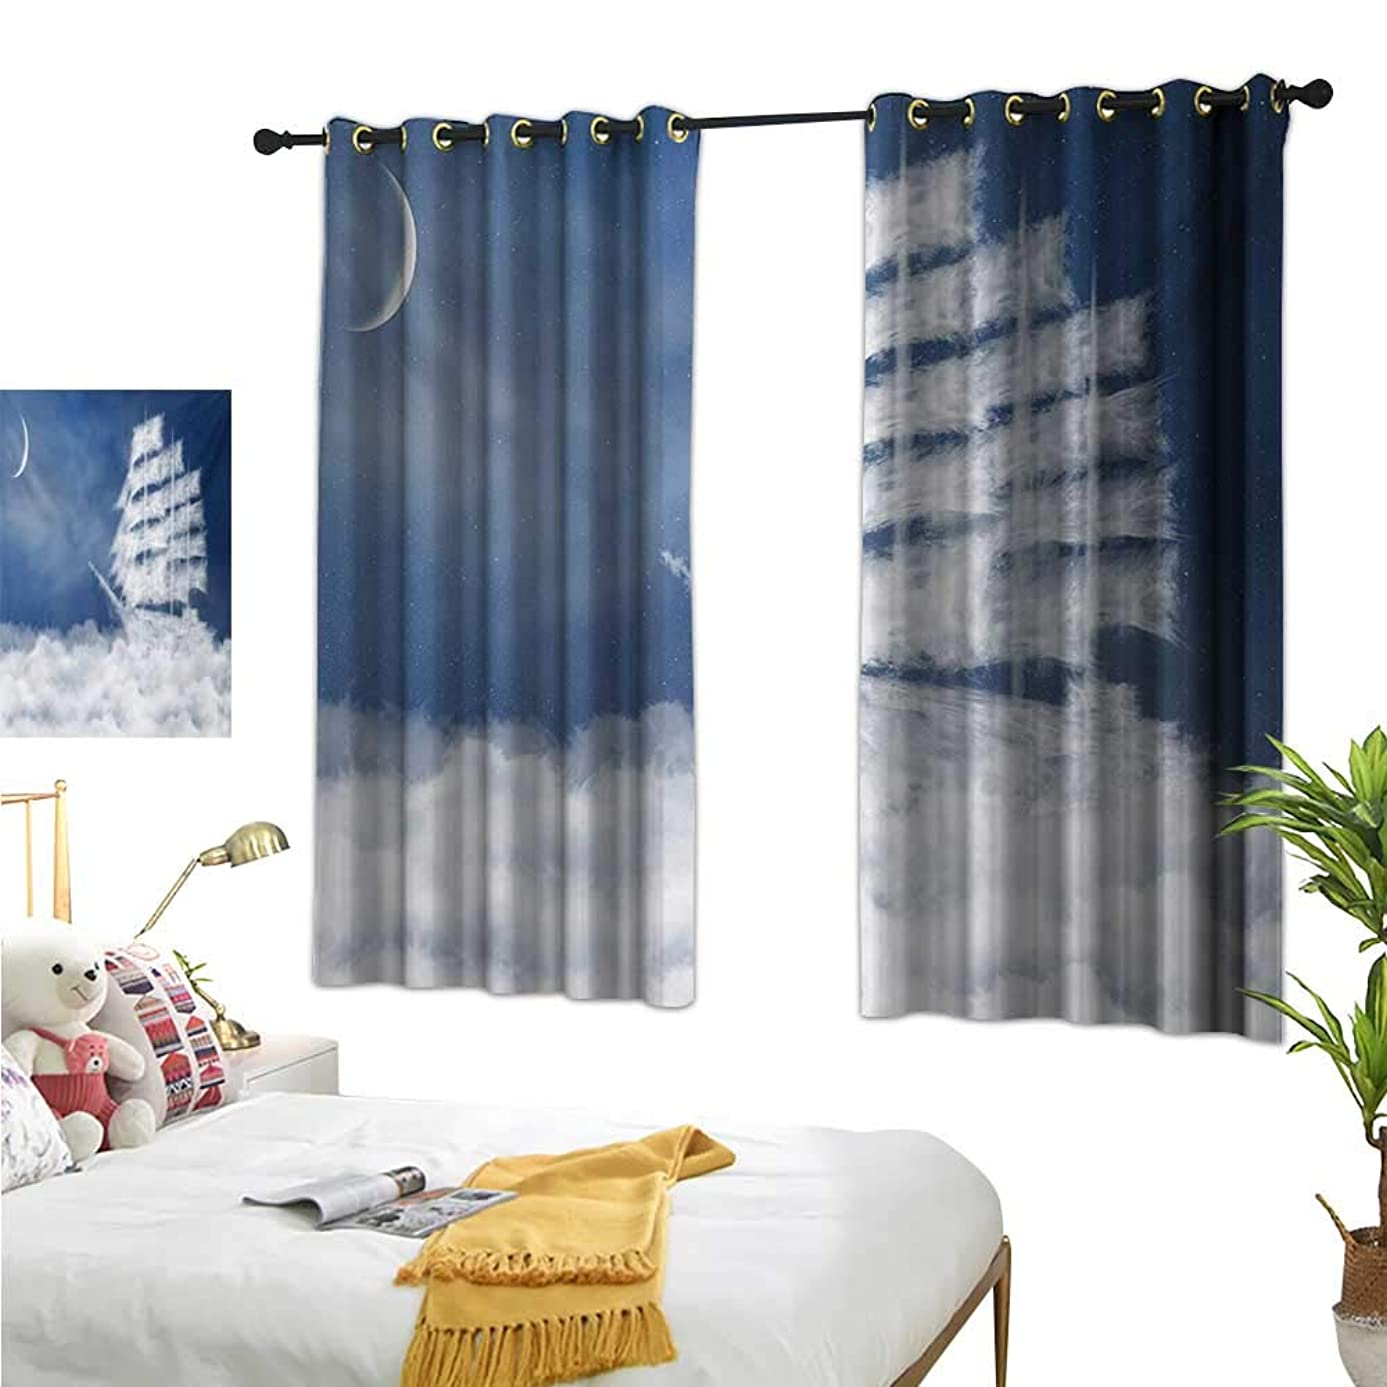 Warm Family Eclipse Curtains Nautical,A Yacht in The Ocean Made and Shaped with Fluffy Clouds Atmospheric Imaginary Sky,Blue White 72